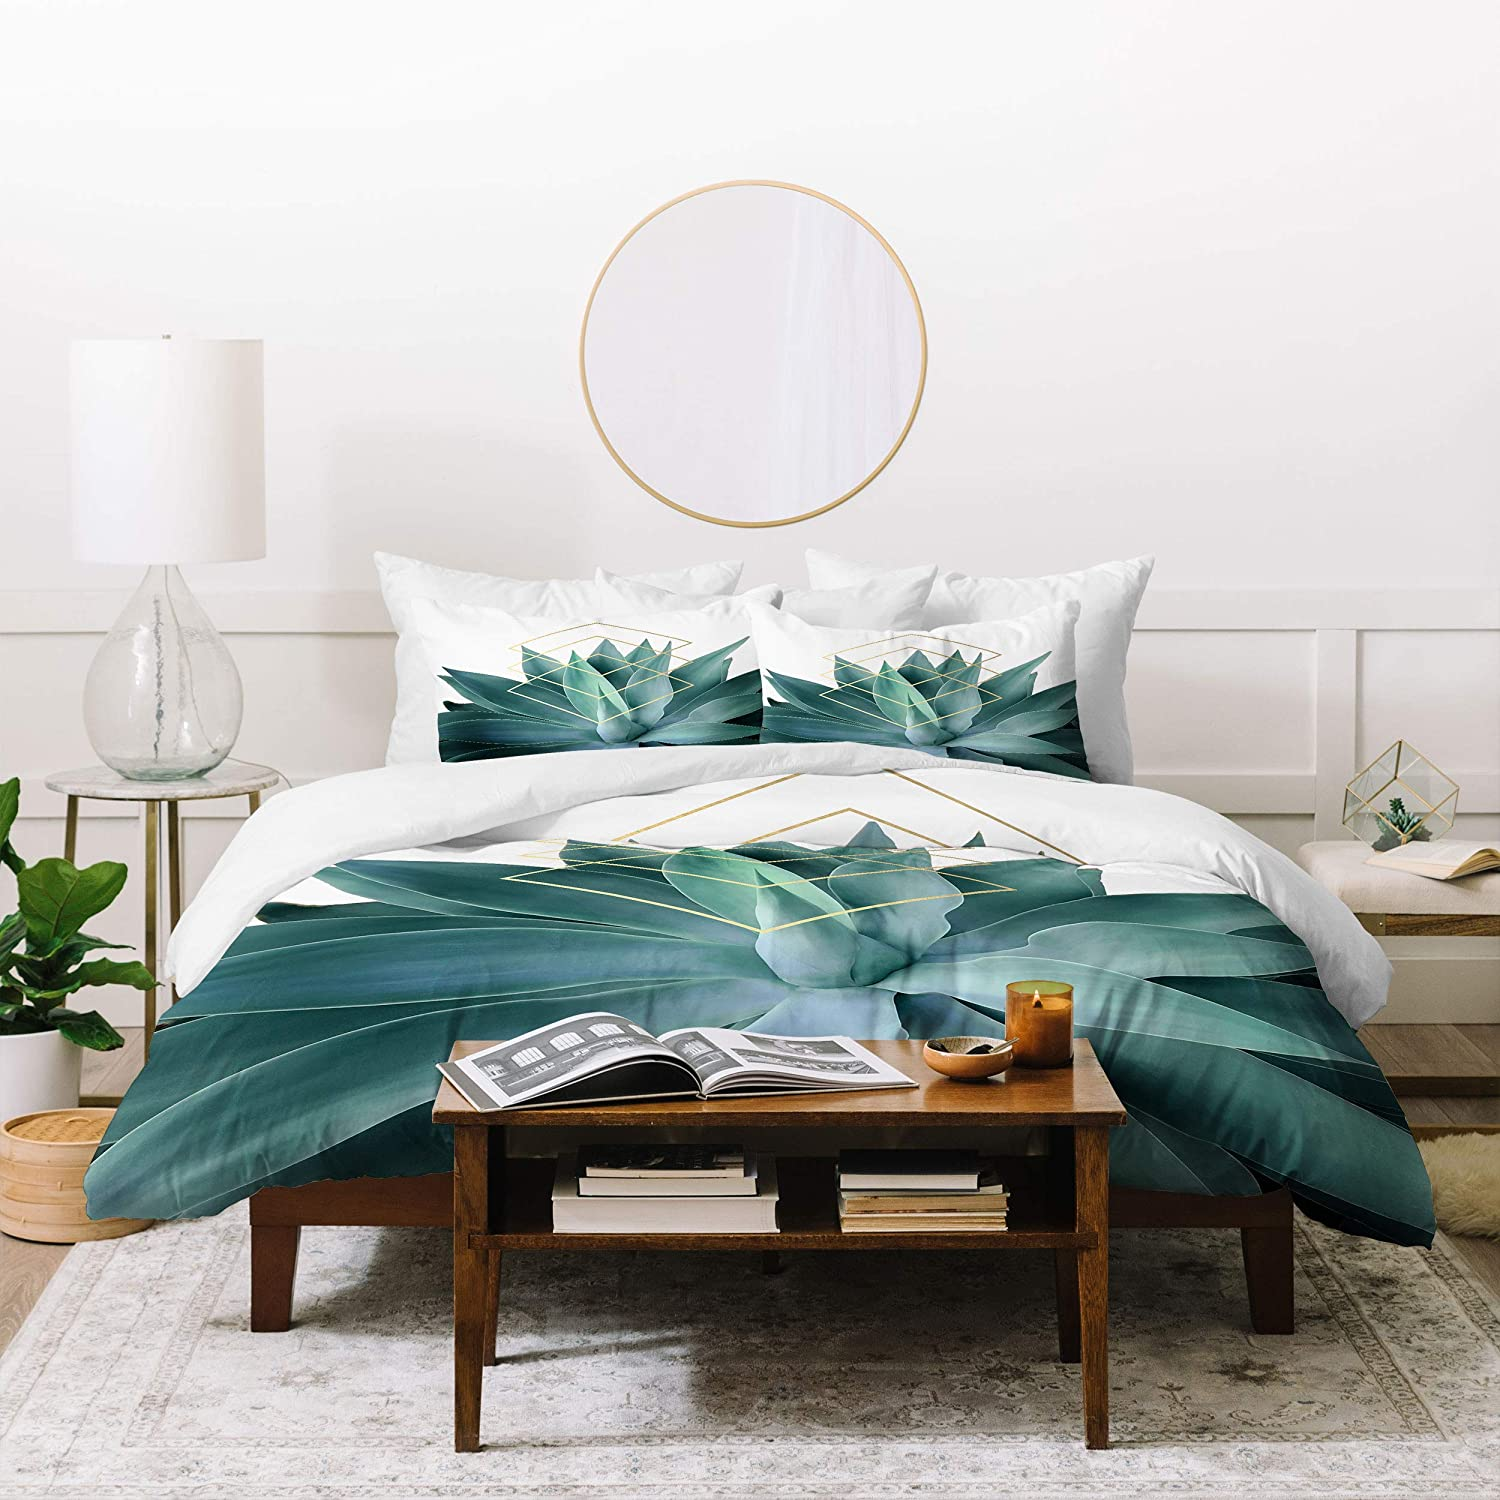 Society6 Gale Switzer Agave Geometrics with Pillowcase security Duvet Set Sale Special Price